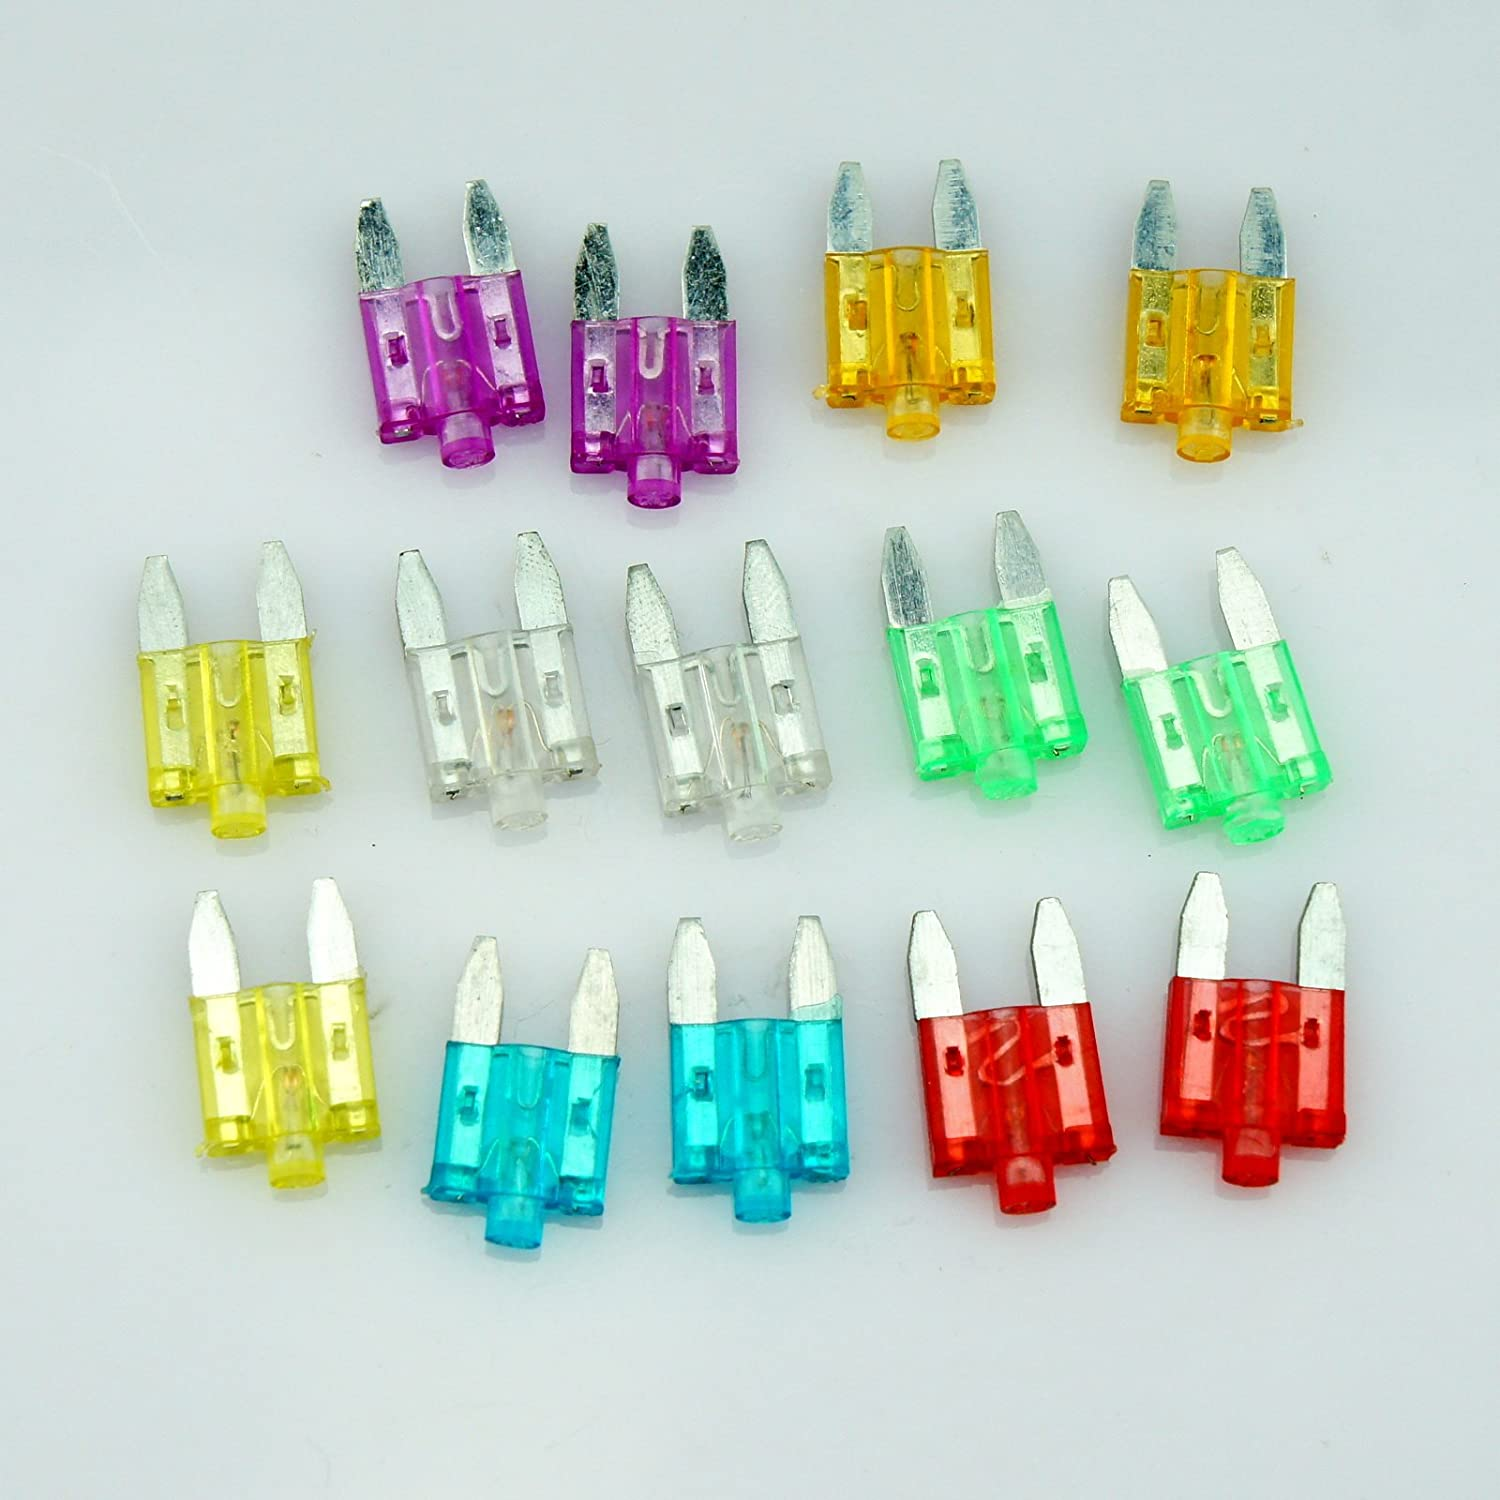 14 Car Vehicle ATS Blade Fuse Assortment Kit With Status LED Glow Blow 5A 10A 15A 20A 25A 30A 35A